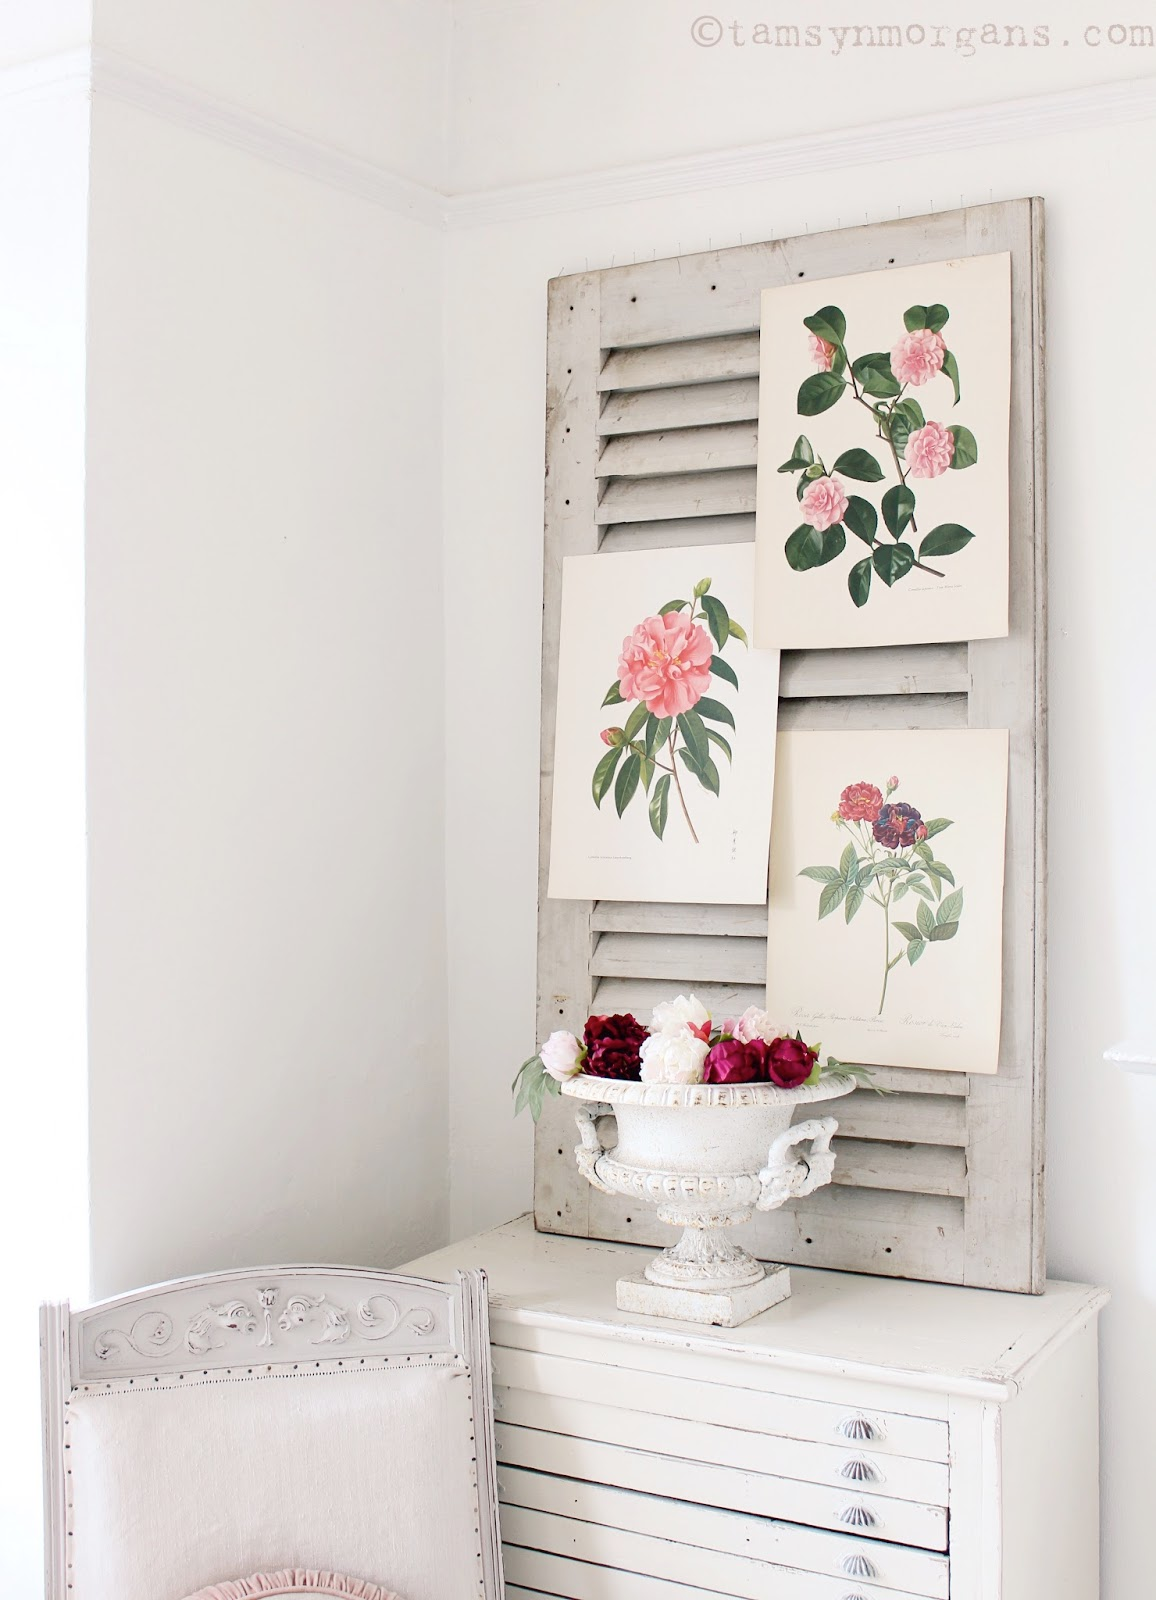 Tams Near Me >> Vintage Botanical Prints - The Villa on Mount Pleasant